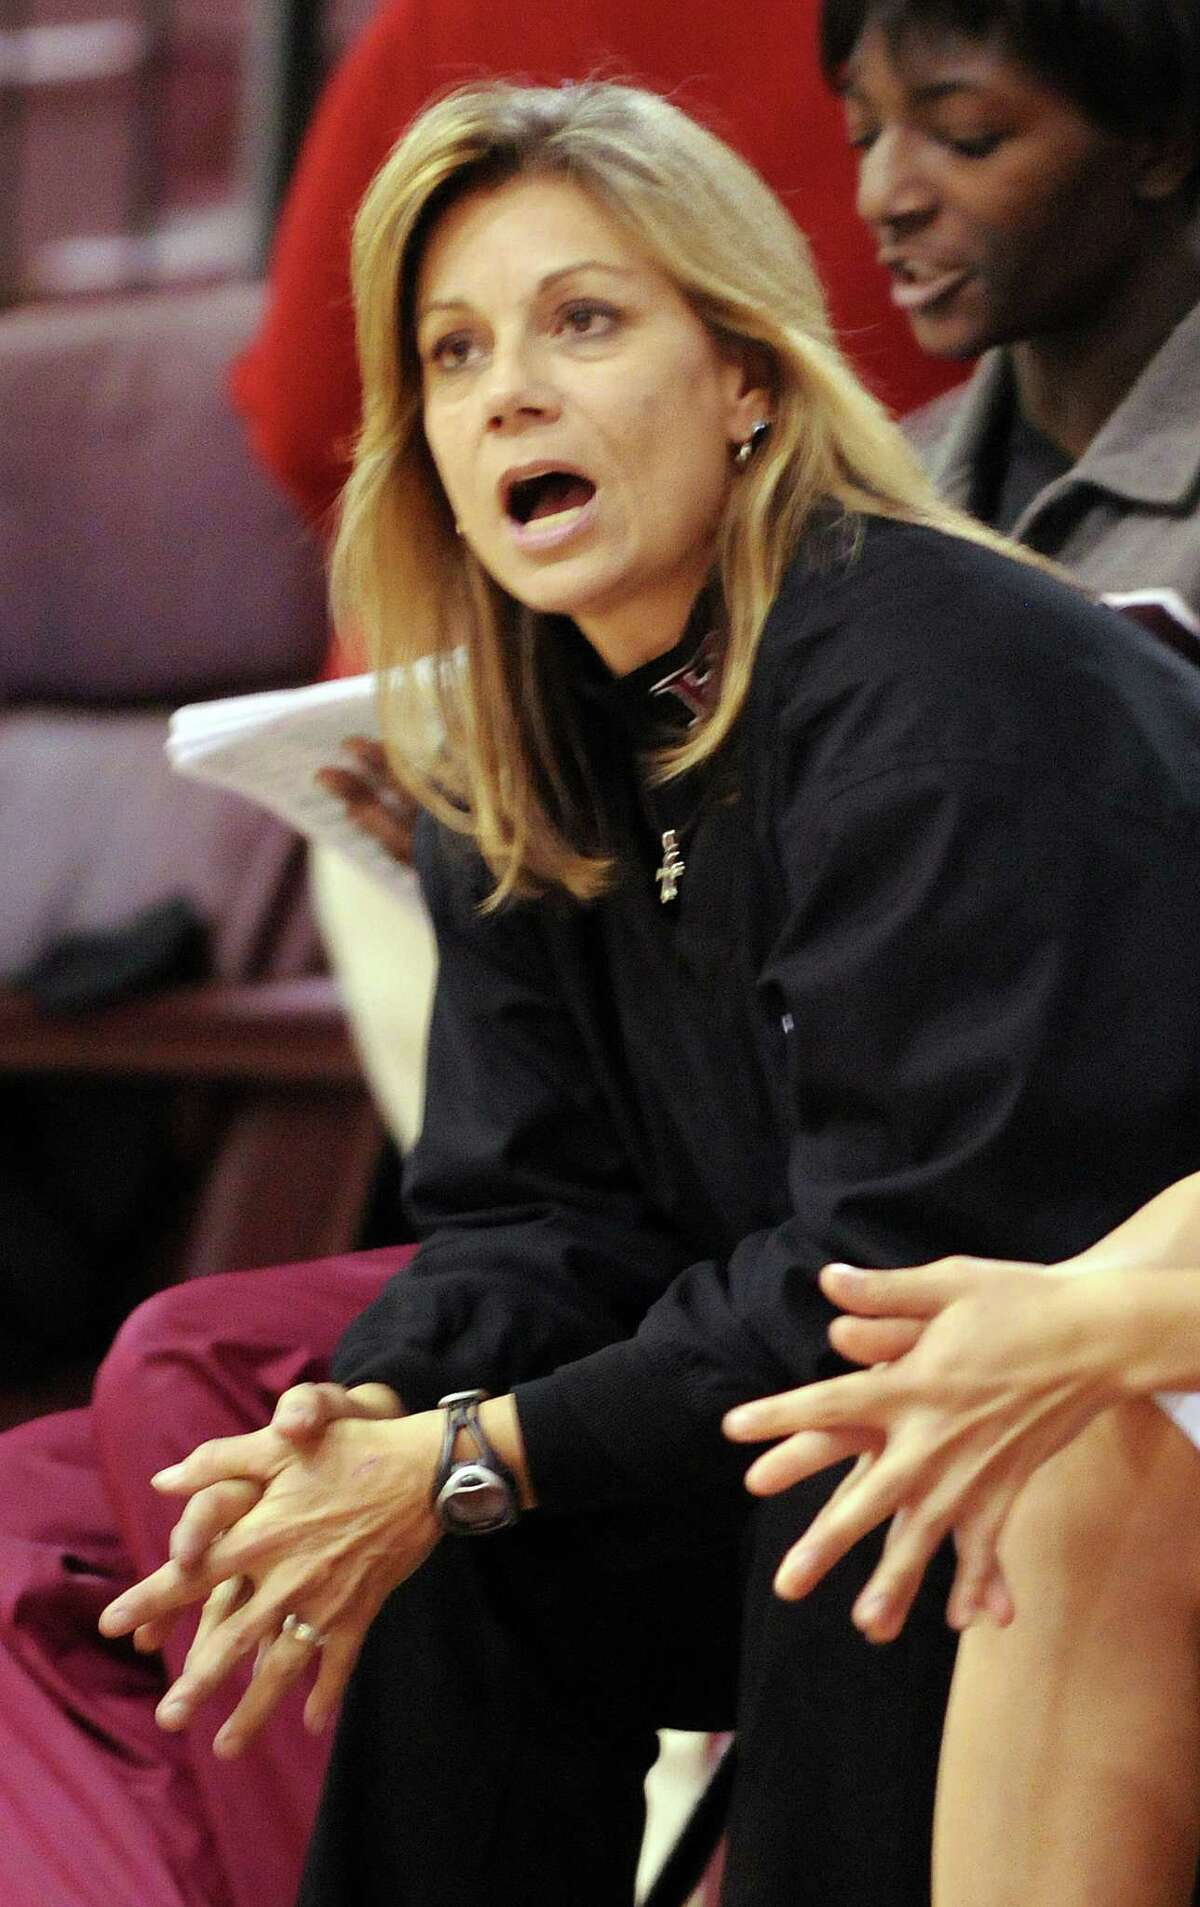 Pearland head girls basketball coach Donna Vacek has the Oilers in rebuilding mode this season.